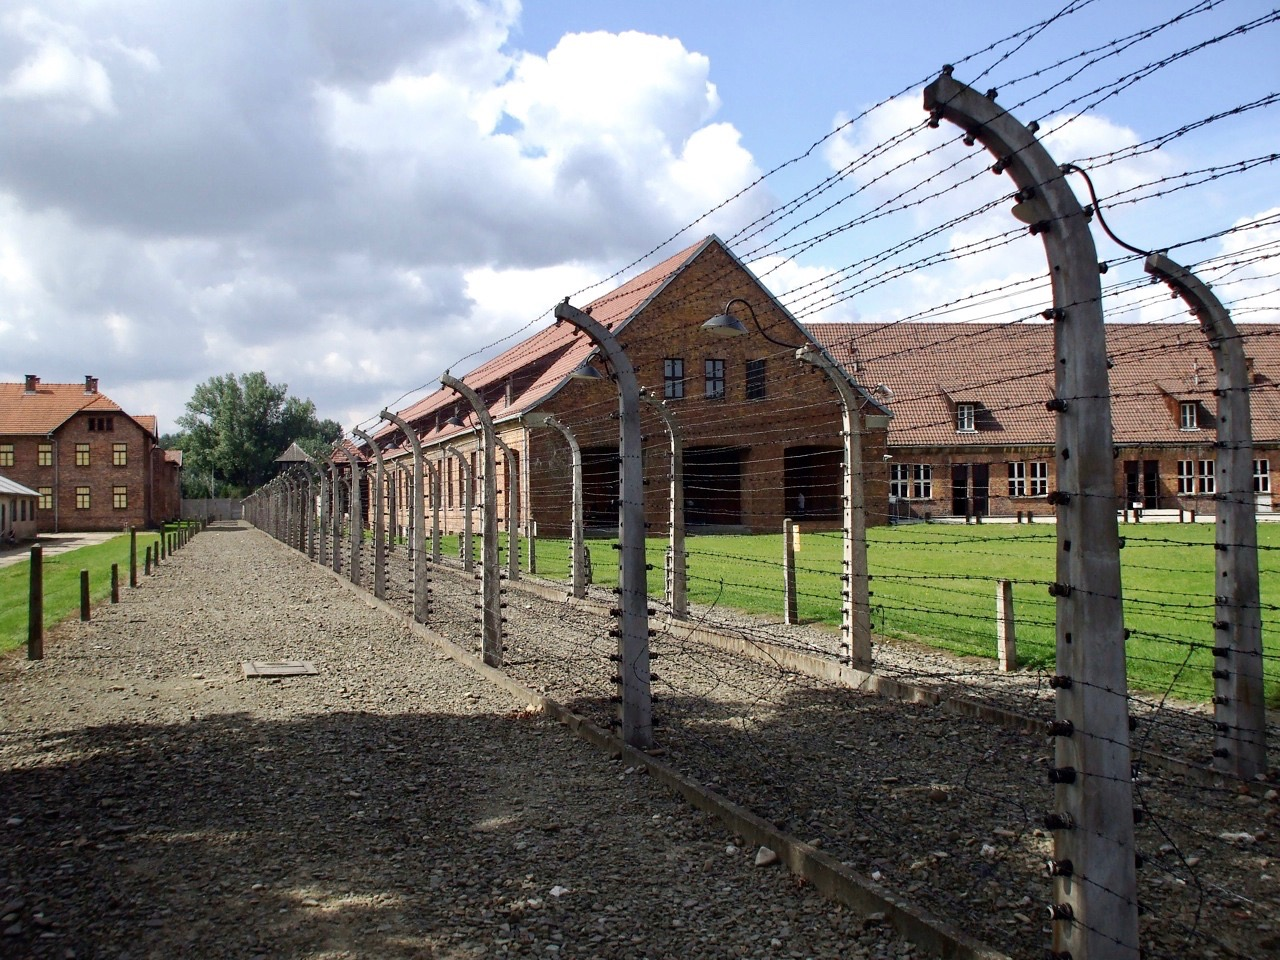 A view of brick buildings and green fields along a barbed wire fence at the former German Nazi Concentration and Extermination Camp at Auschwitz-Birkenau, in Oświęcim, Poland.